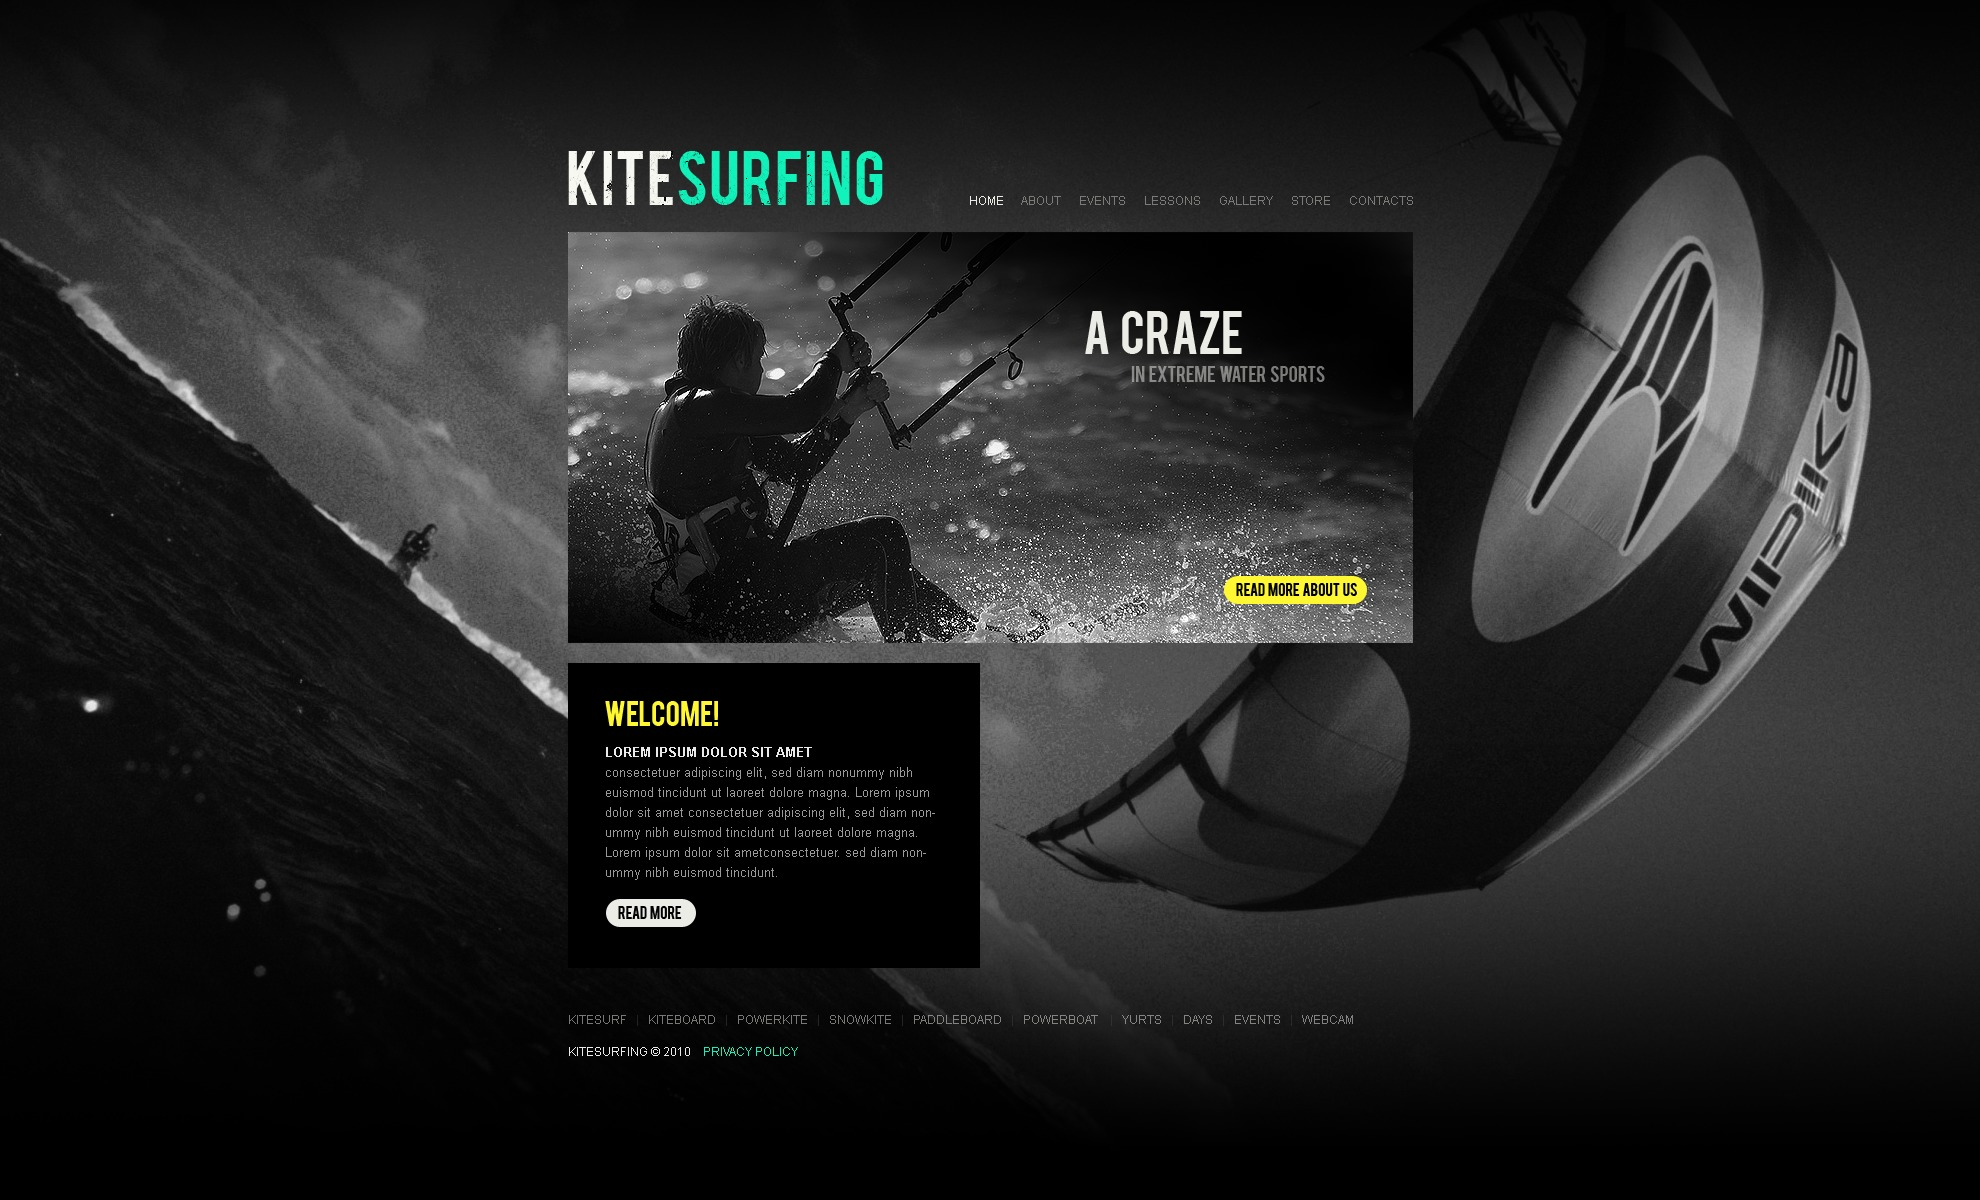 The Kite Kitesurfing Club PSD Design 54260, one of the best PSD templates of its kind (sport, flash 8, wide, black), also known as kite kitesurfing club PSD template, sport PSD template, entertainment PSD template, kiteboarding PSD template, kitesurfing PSD template, extreme club PSD template, training PSD template, trainers PSD template, boards PSD template, equipment PSD template, team PSD template, offers PSD template, services PSD template, recreation PSD template, gallery PSD template, shop PSD template, products PSD template, guide PSD template, support and related with kite kitesurfing club, sport, entertainment, kiteboarding, kitesurfing, extreme club, training, trainers, boards, equipment, team, offers, services, recreation, gallery, shop, products, guide, support, etc.